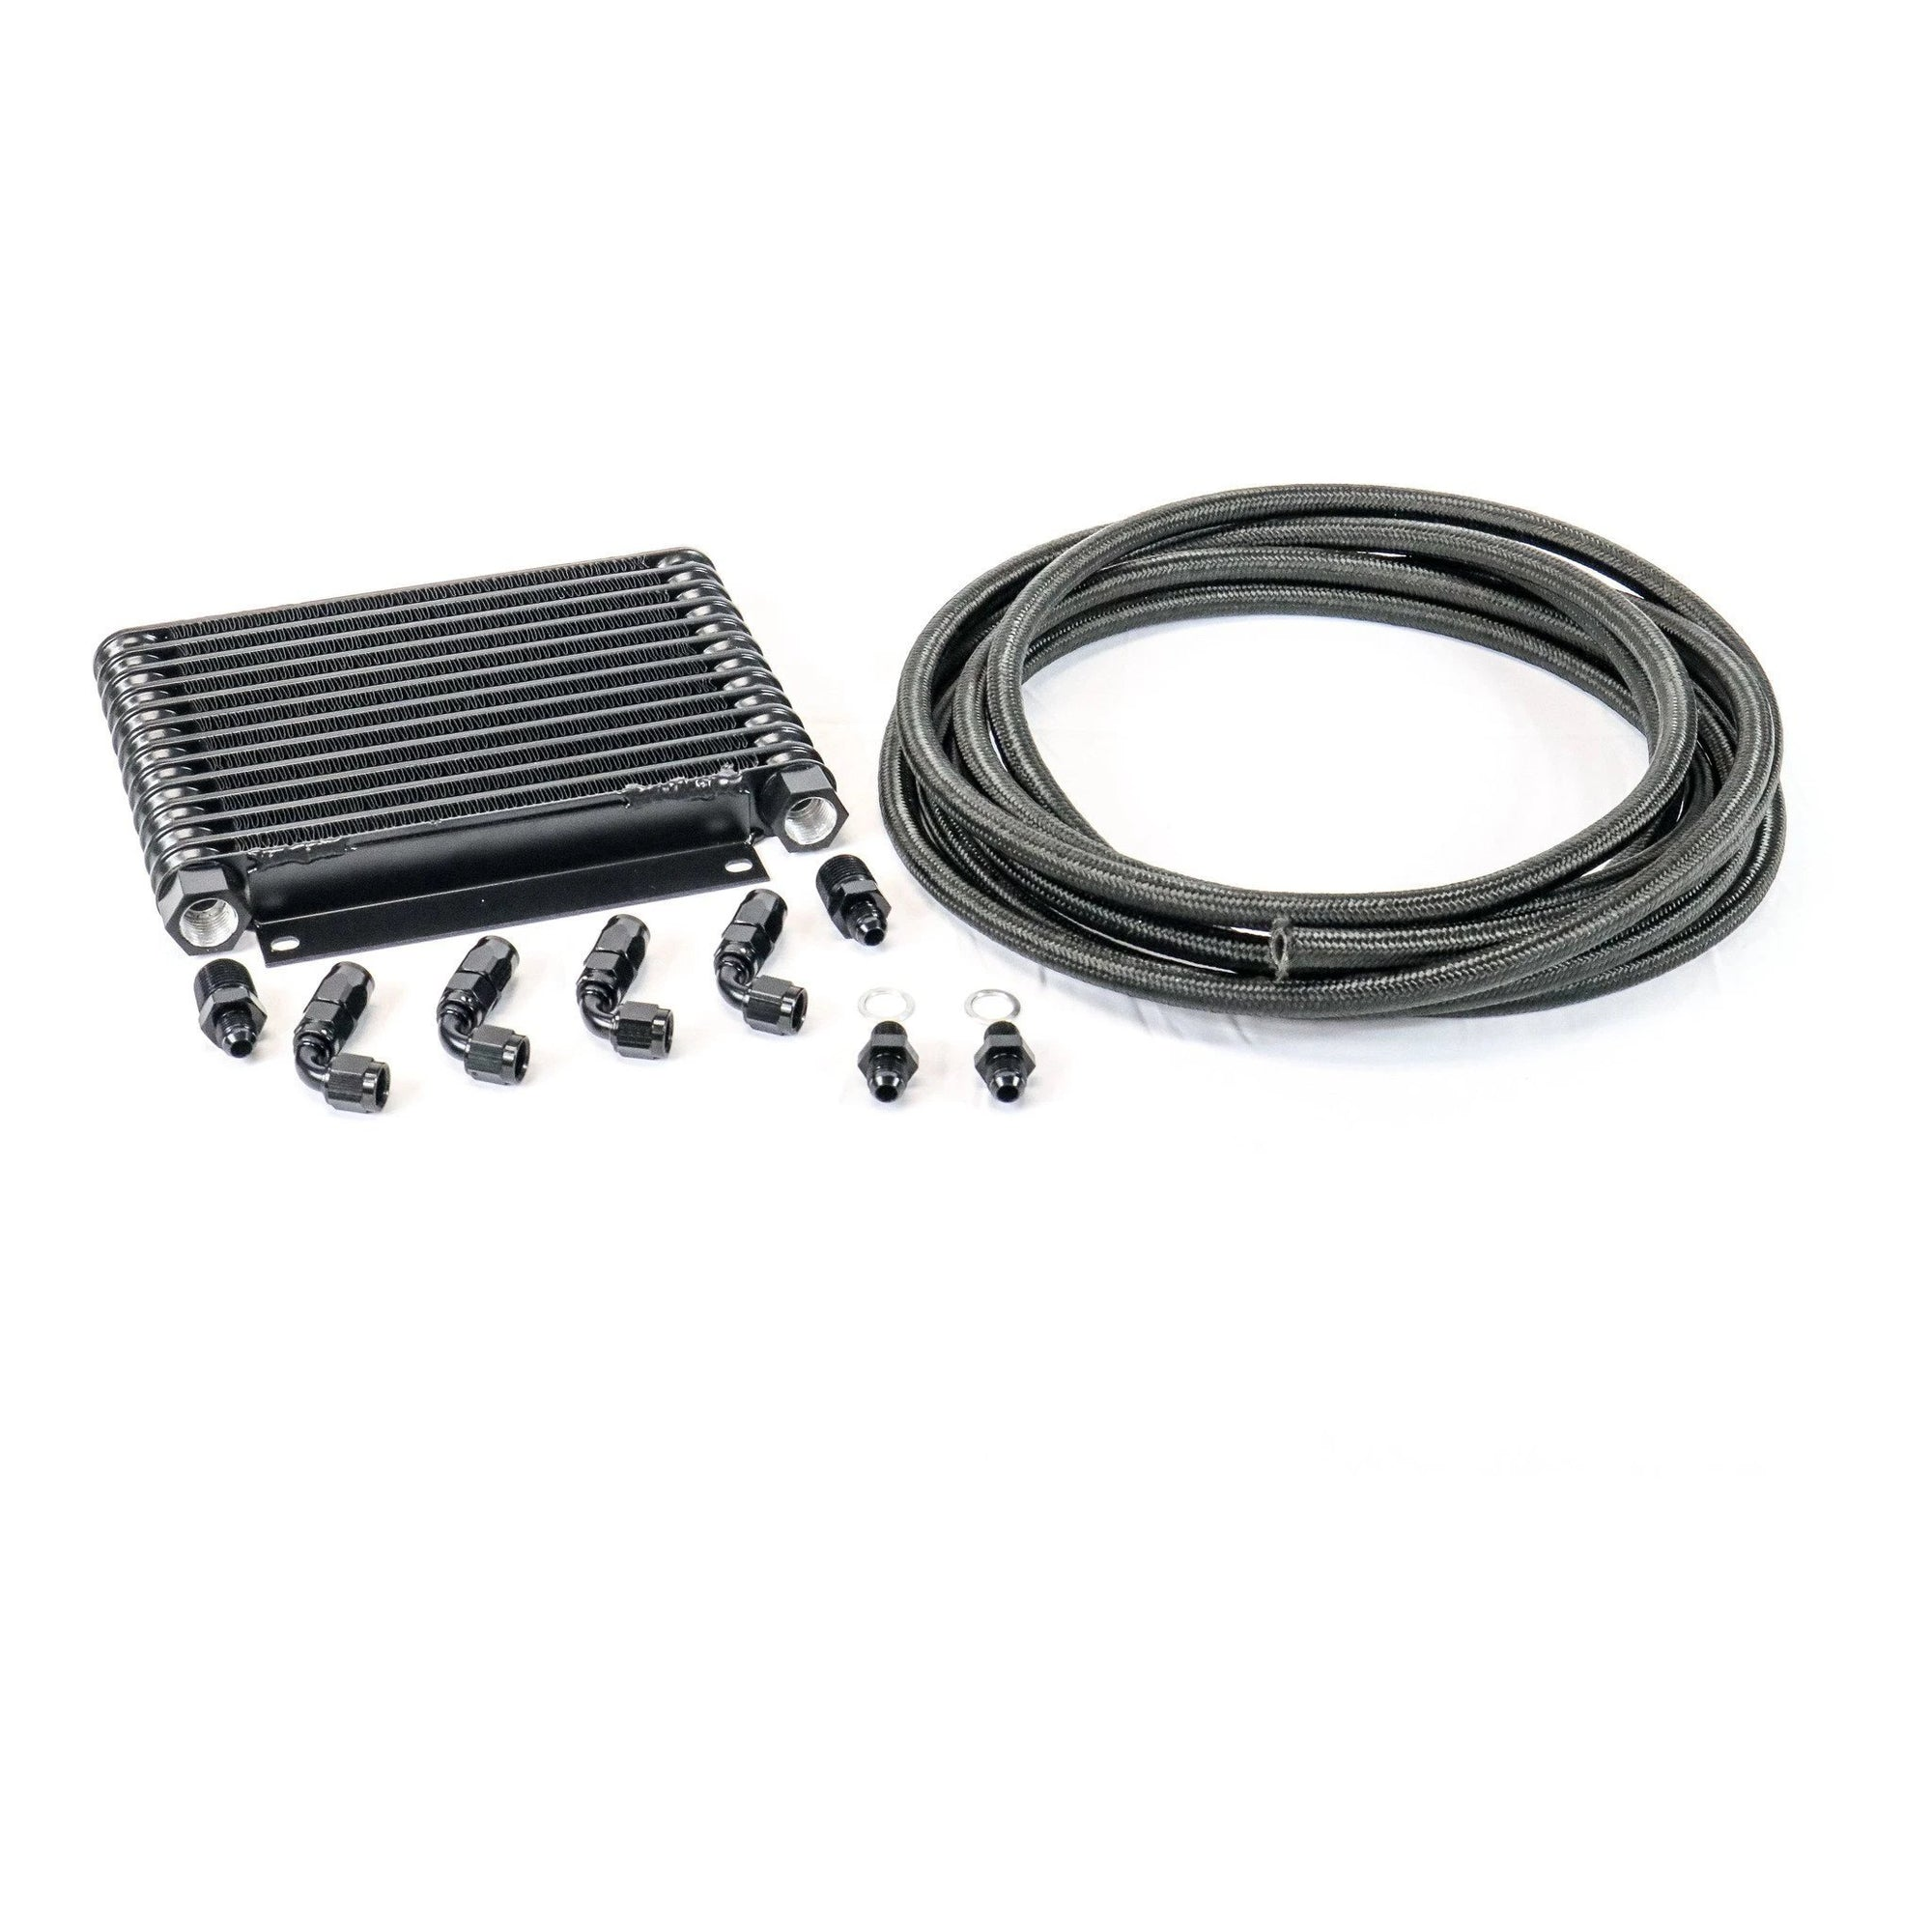 GM TH350, TH400, 700R4, 4L60E Derale Trans Cooler Kit w/Fragola Lines/Fittings-Derale-Motion Raceworks